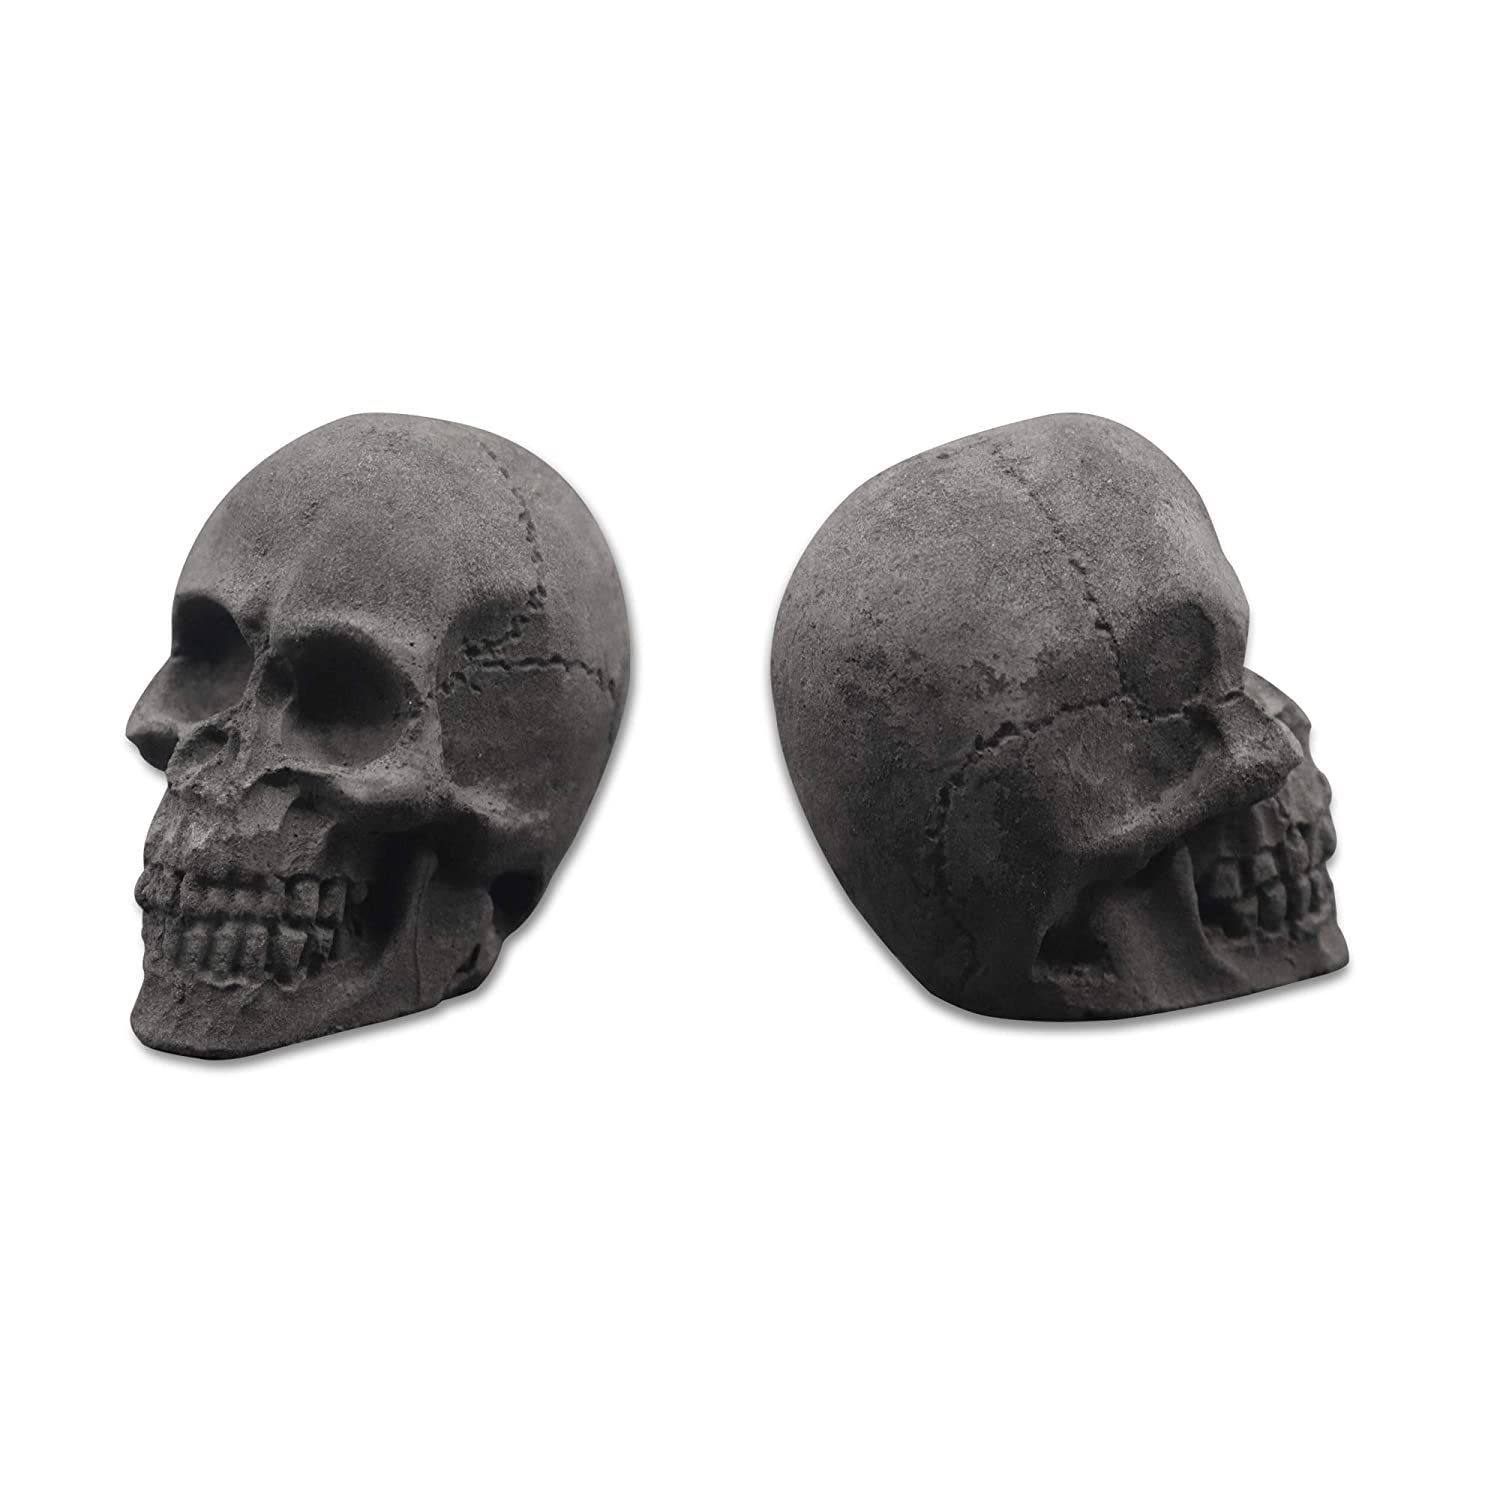 Trees/&Forrest FiveTop Imitated Human Skull Gas Log for Indoor or Outdoor Fireplace Fire Pits Halloween Decor Charcoal 6-Pack Dark Gray